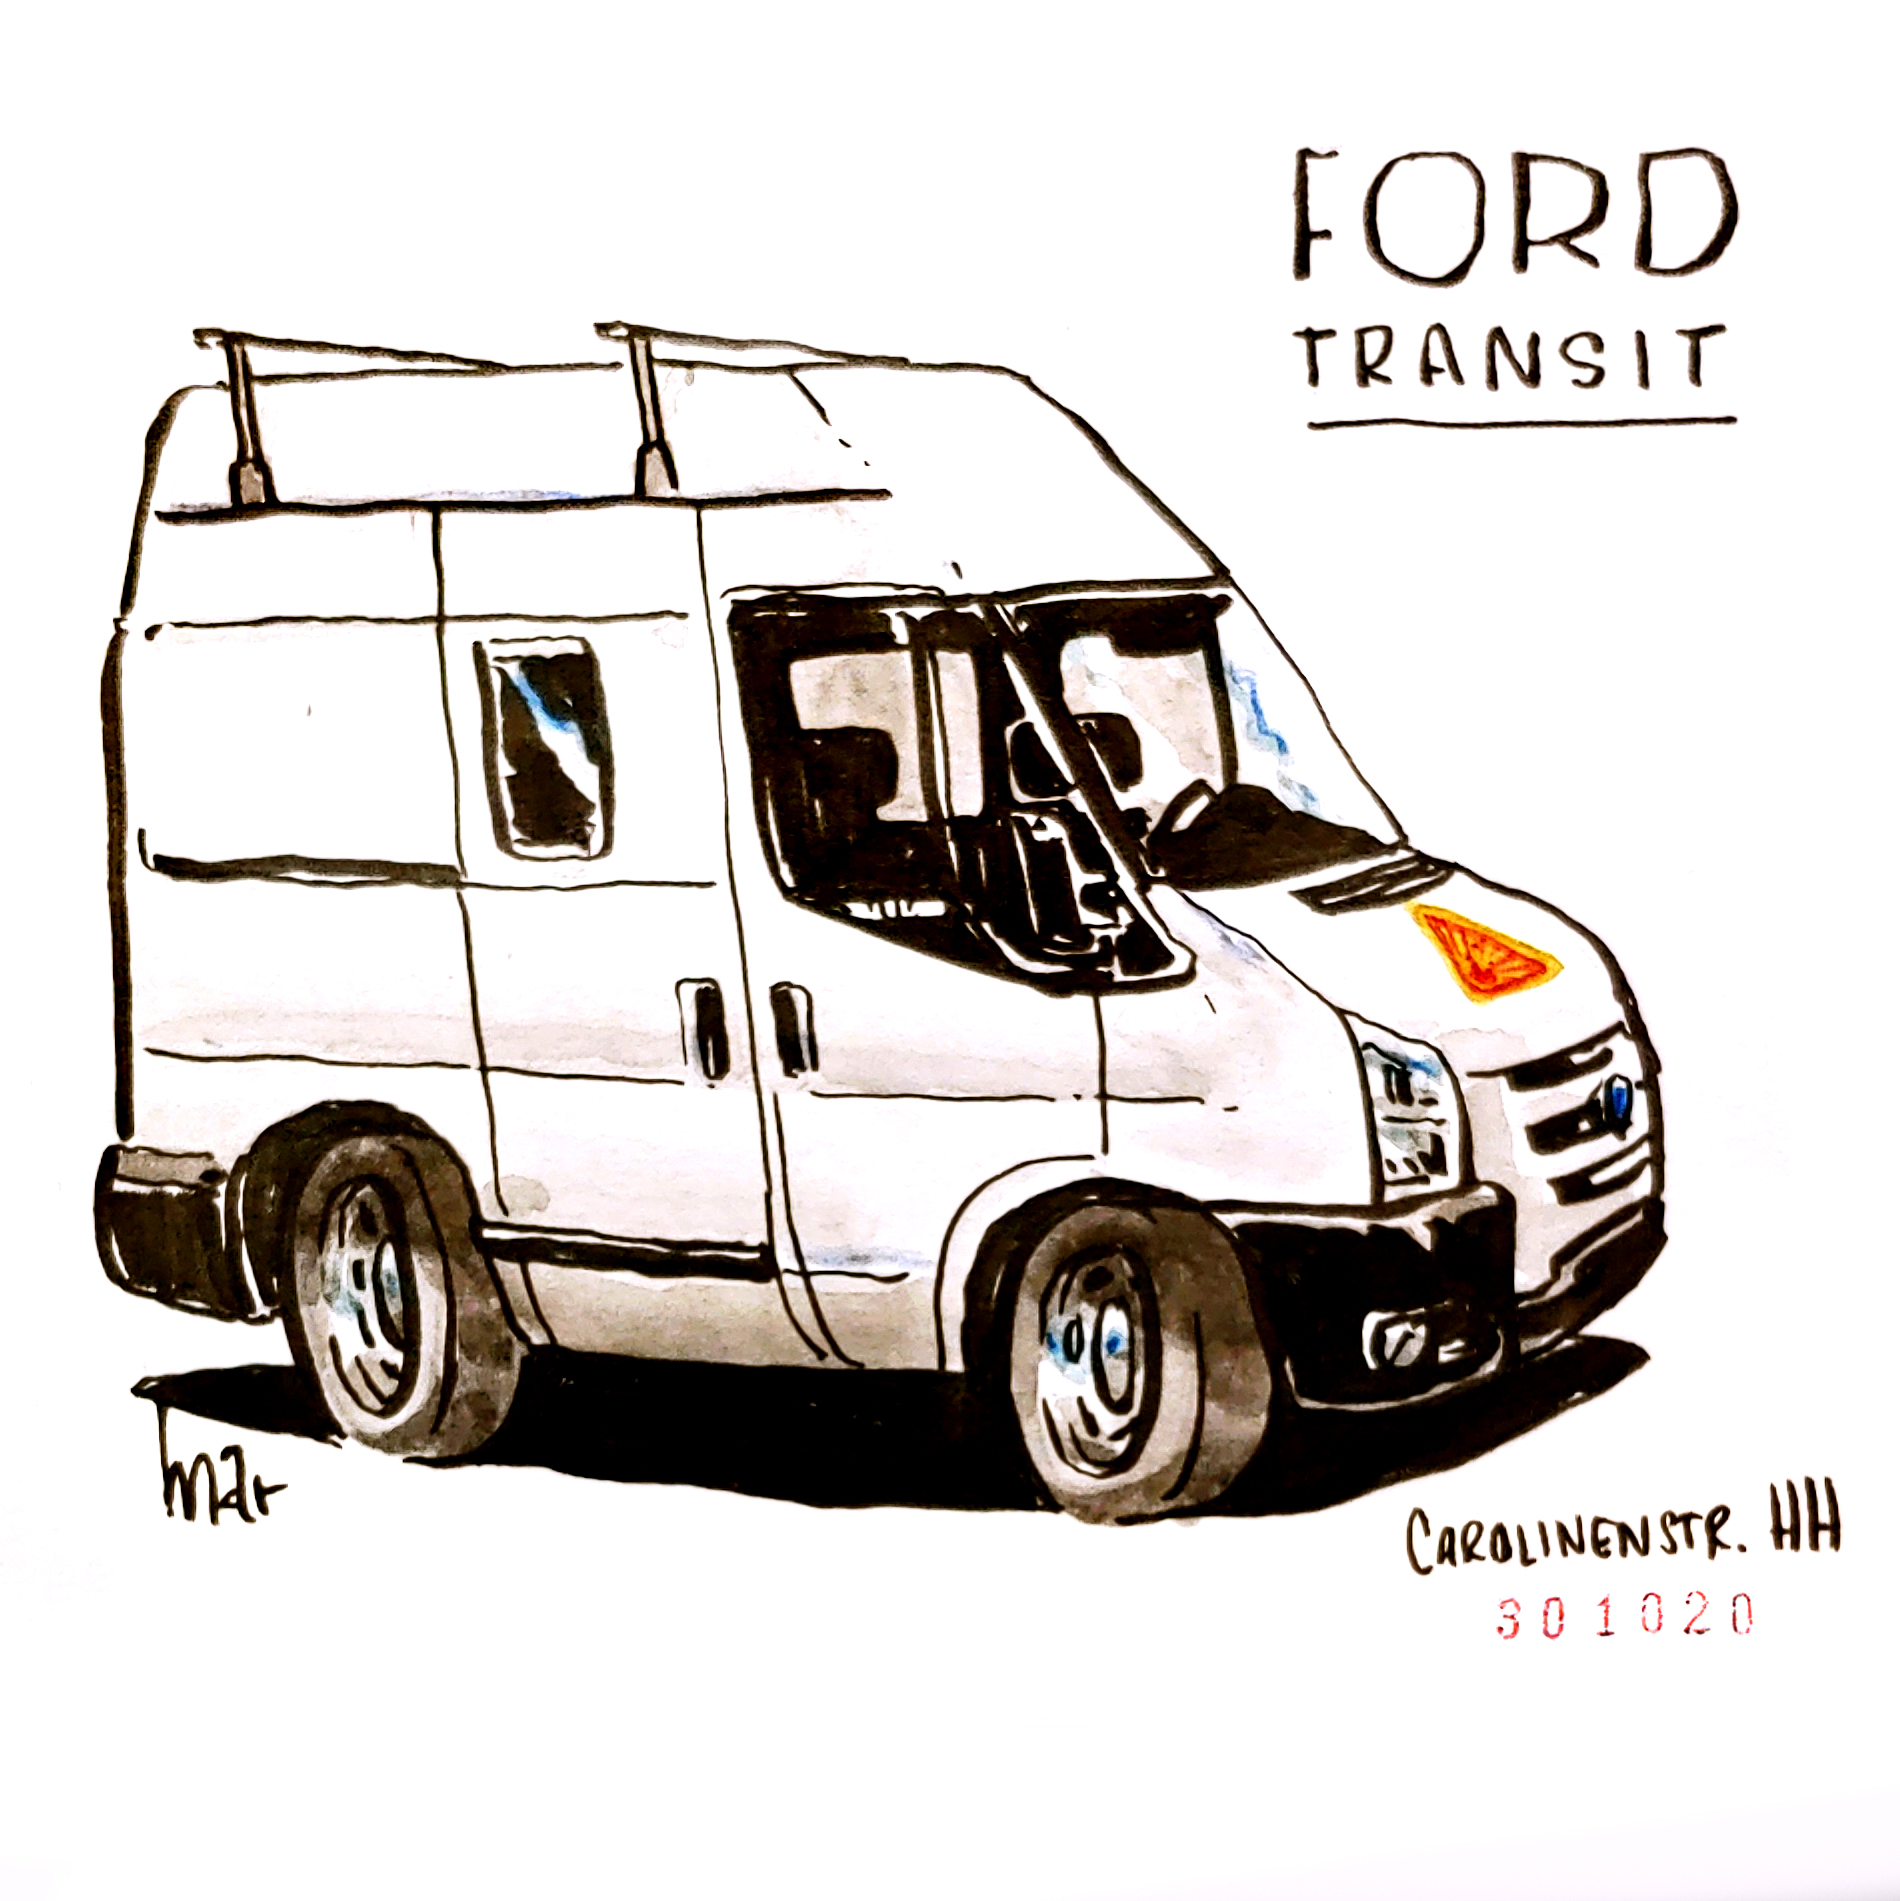 campers of hamburg - ford transit